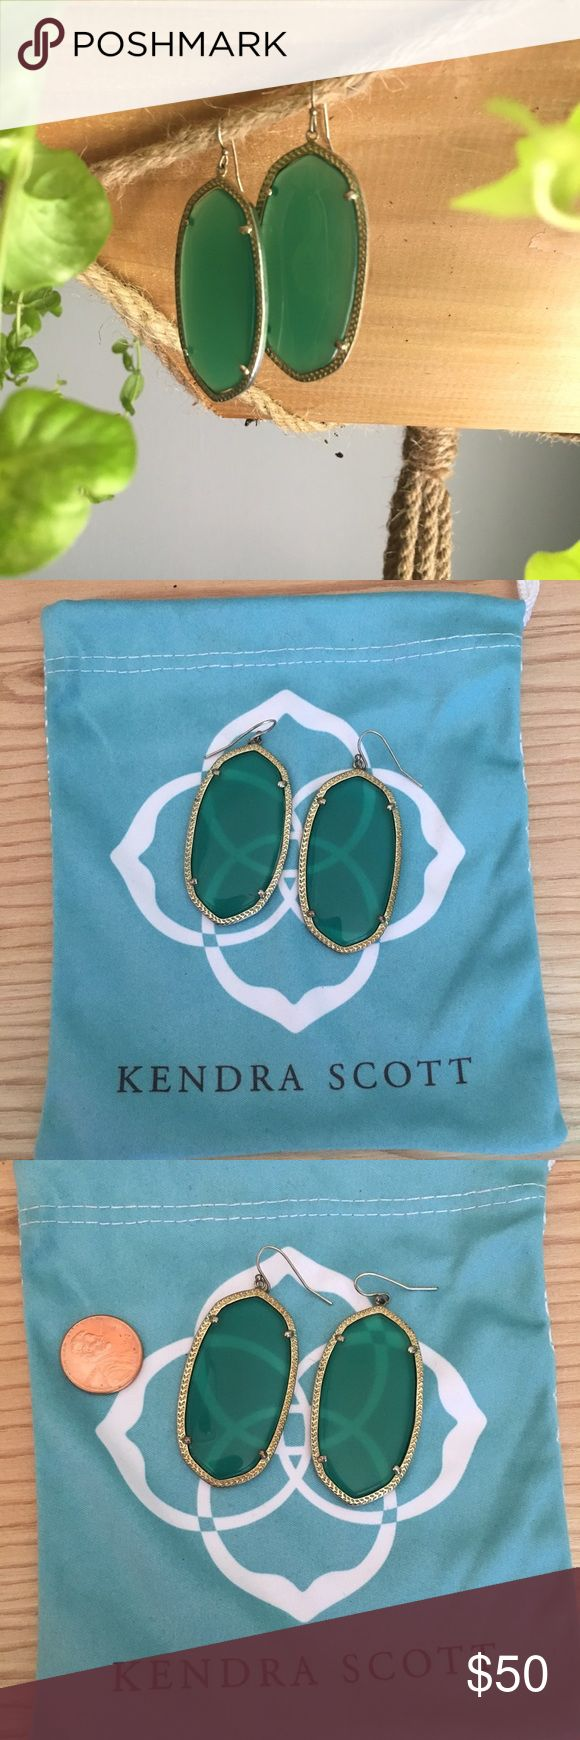 Kendra Scott emerald green drop earrings Beautiful Kendra Scott drop earrings in emerald green and gold. Kendra Scott bag not included in sale. Kendra Scott Accessories